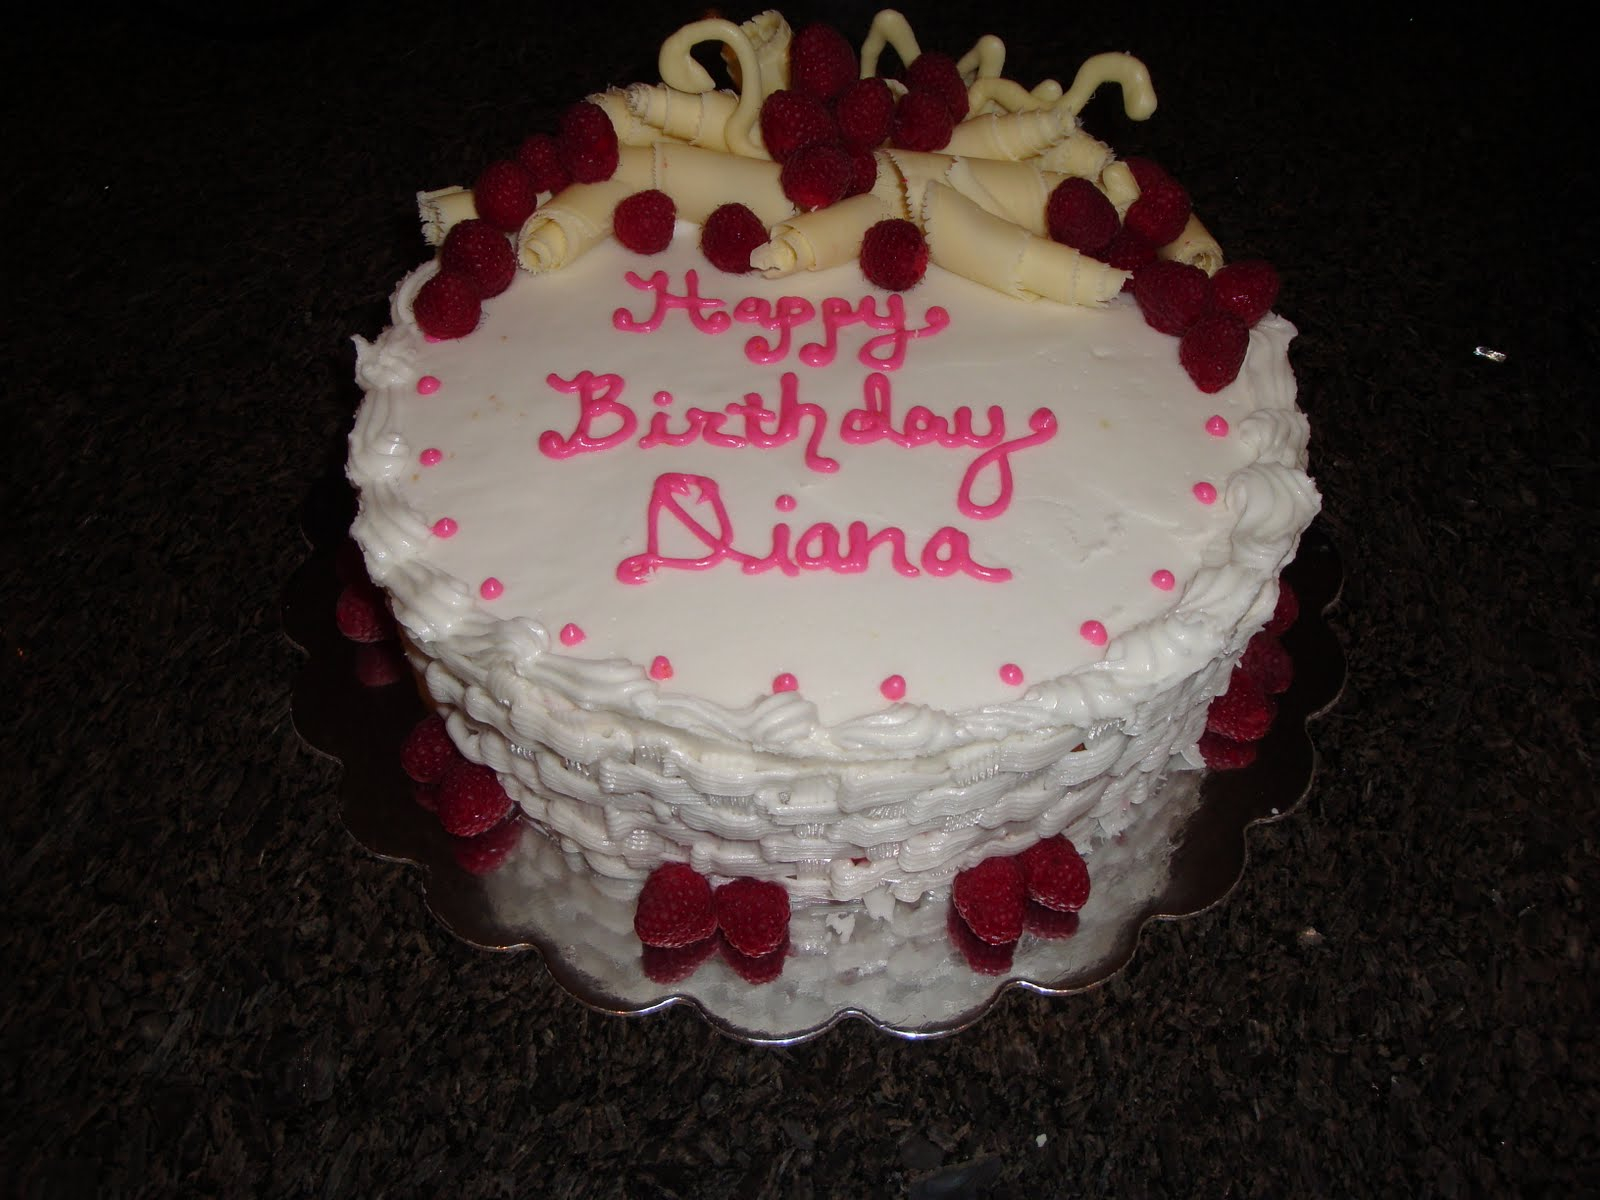 Happy Birthday Diana Cake List Of Synonyms And Antonyms Of The Word Diana Birthday